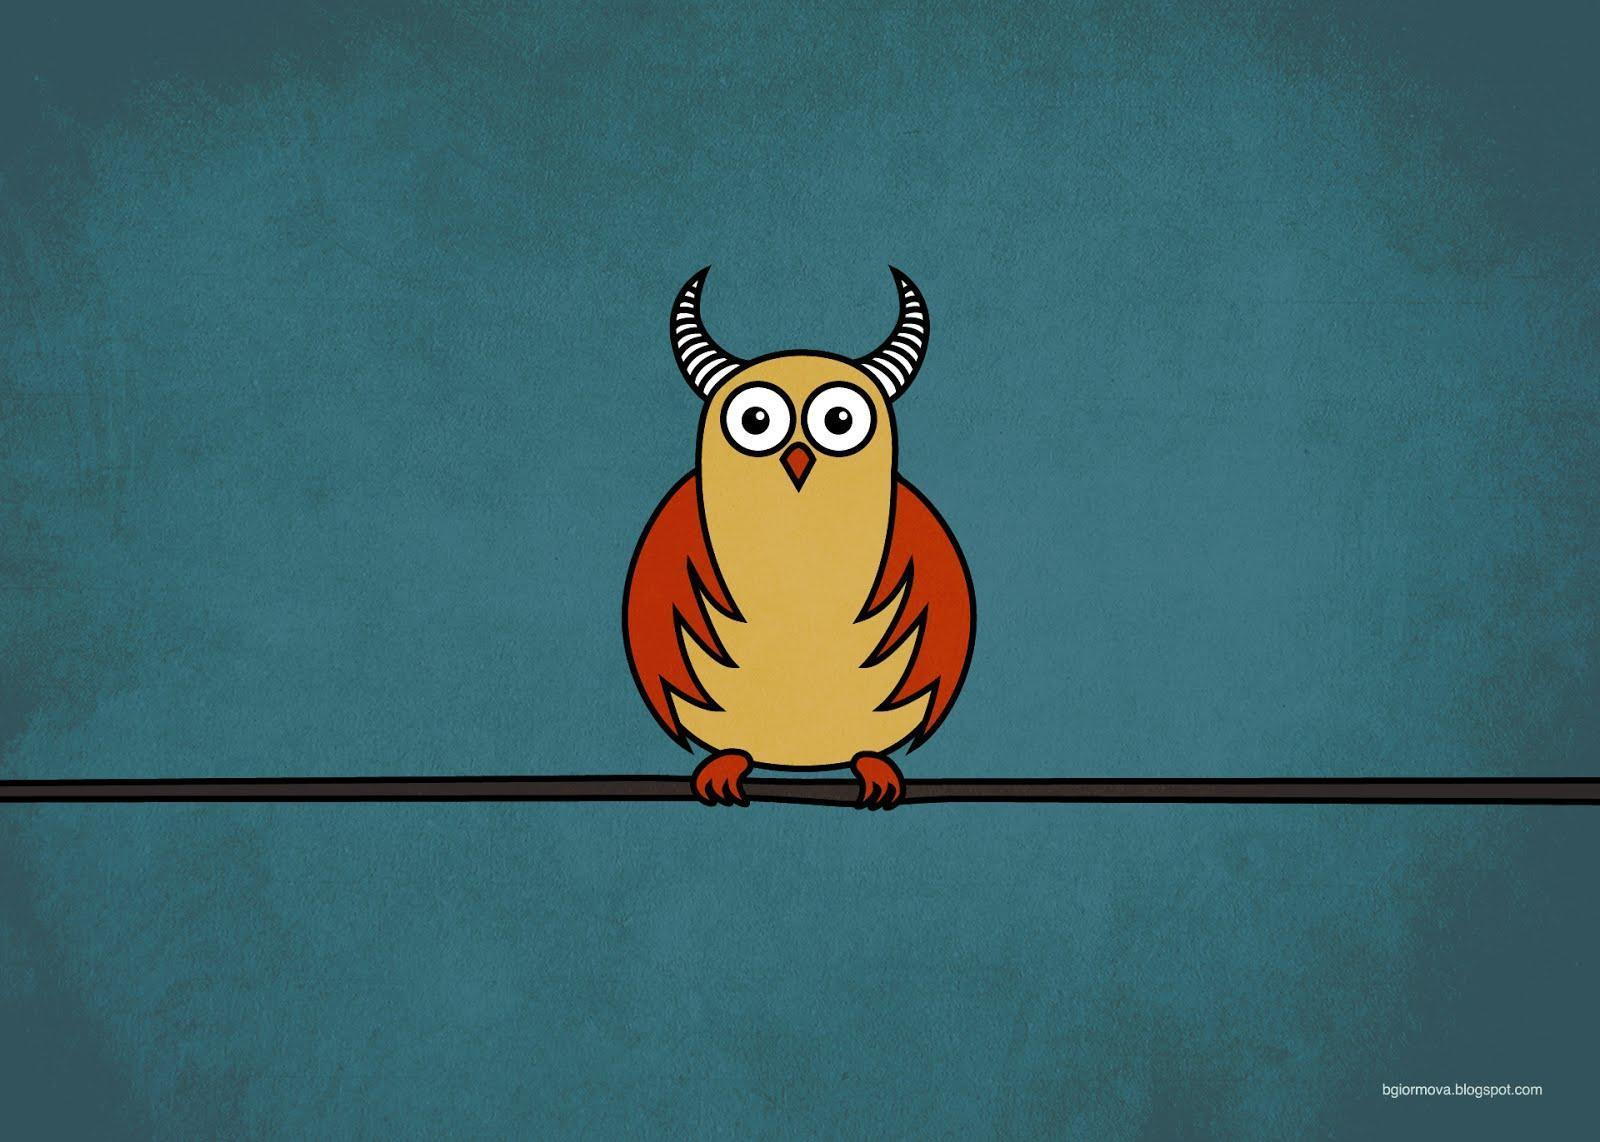 Funny Cartoon Image Funny Cartoon Horned Owl Wallpapers By